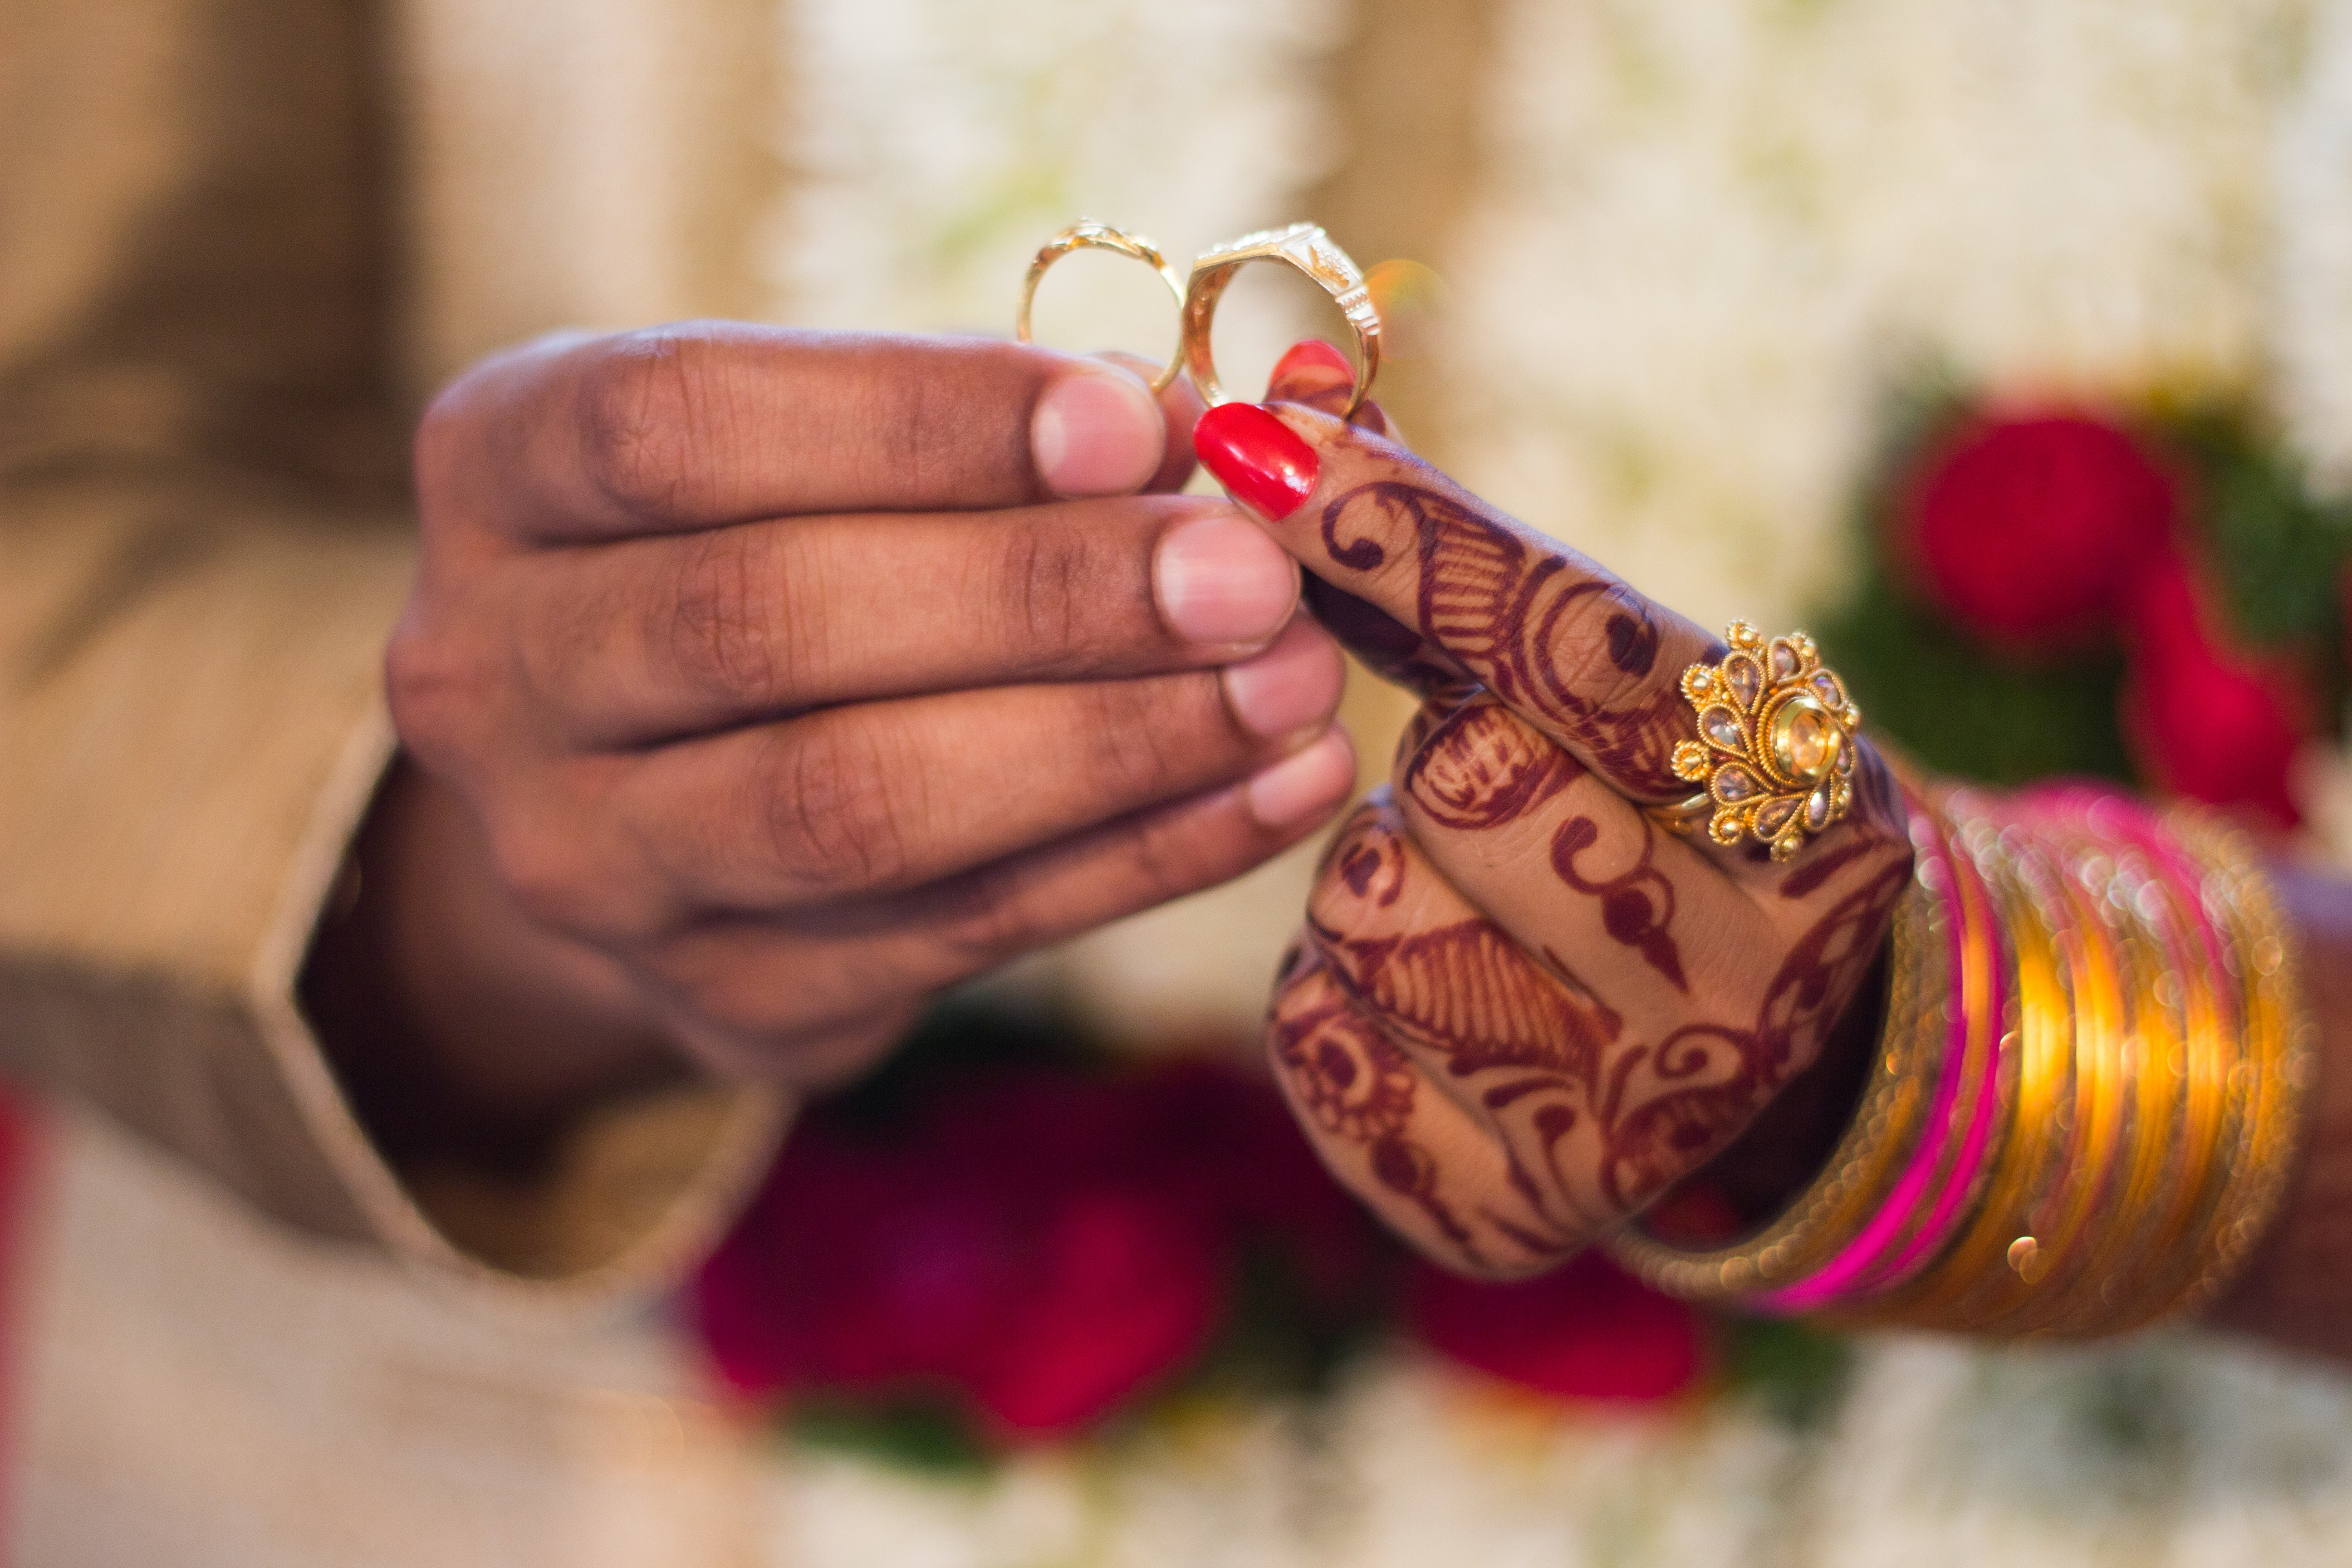 Monetizing Arranged Marriages Can Produce $3bn in Revenue